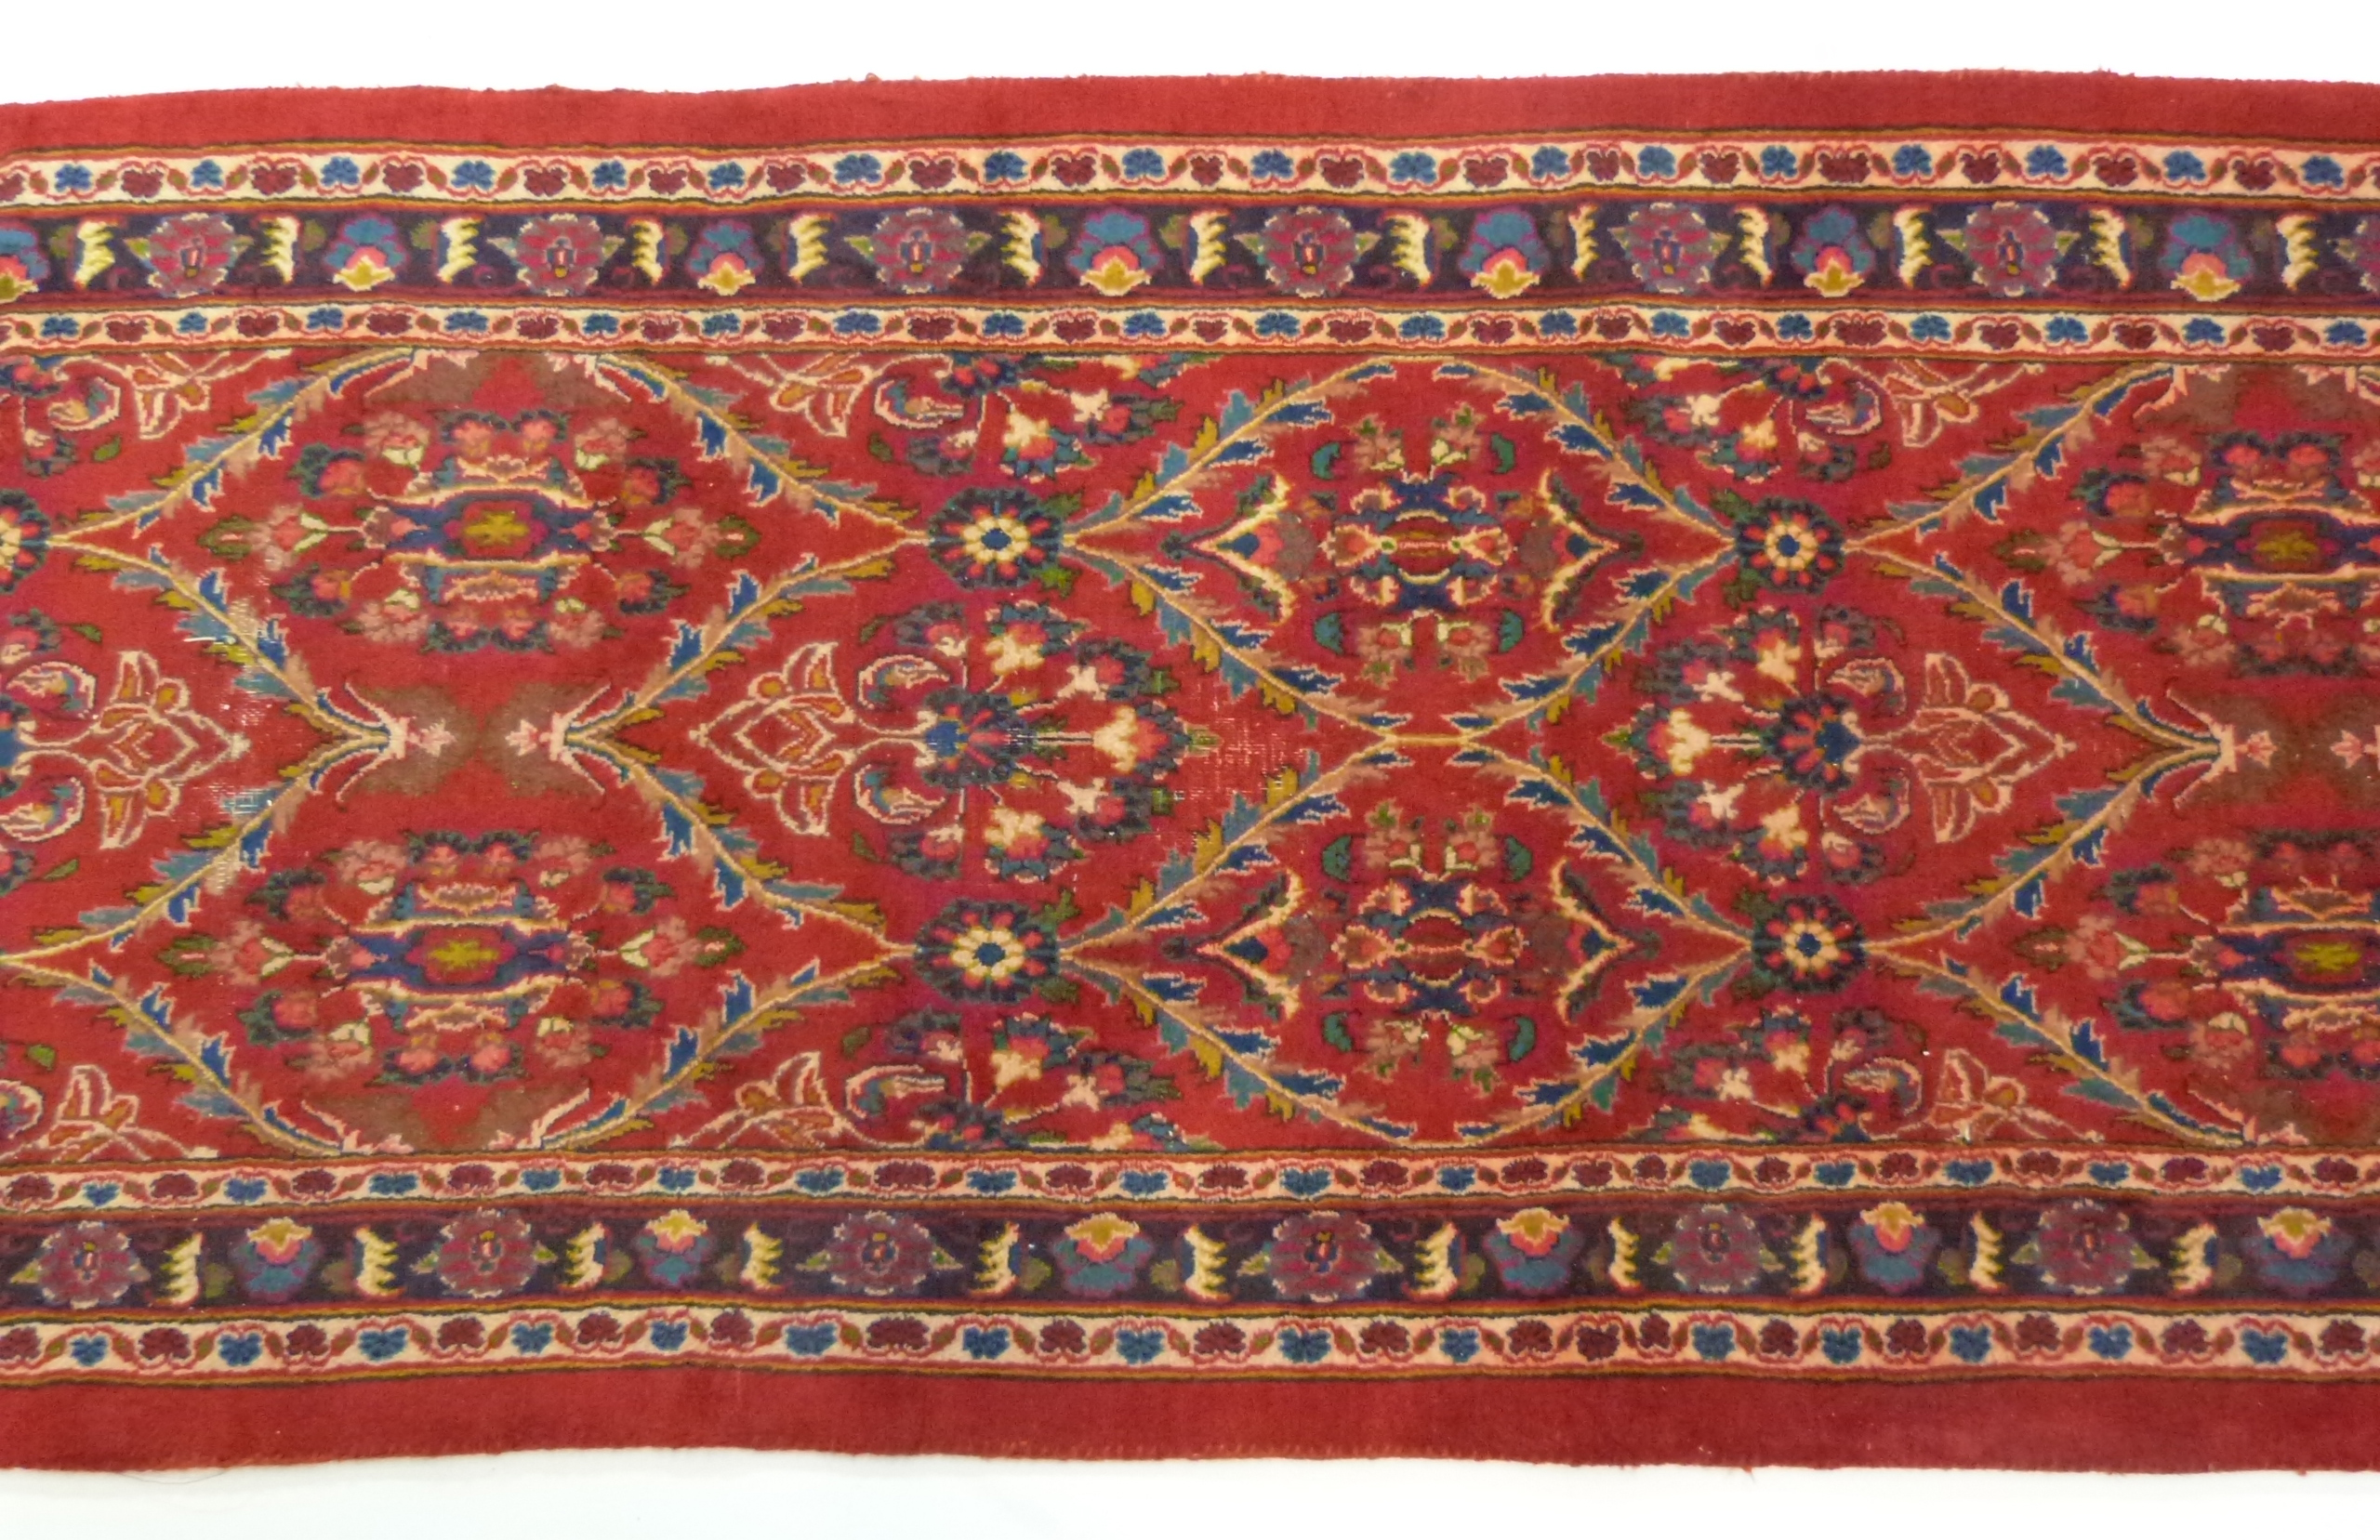 Large red ground Persian Kashan Runner, with all-over floral pattern 397cm x 93cm approximately No - Image 3 of 6